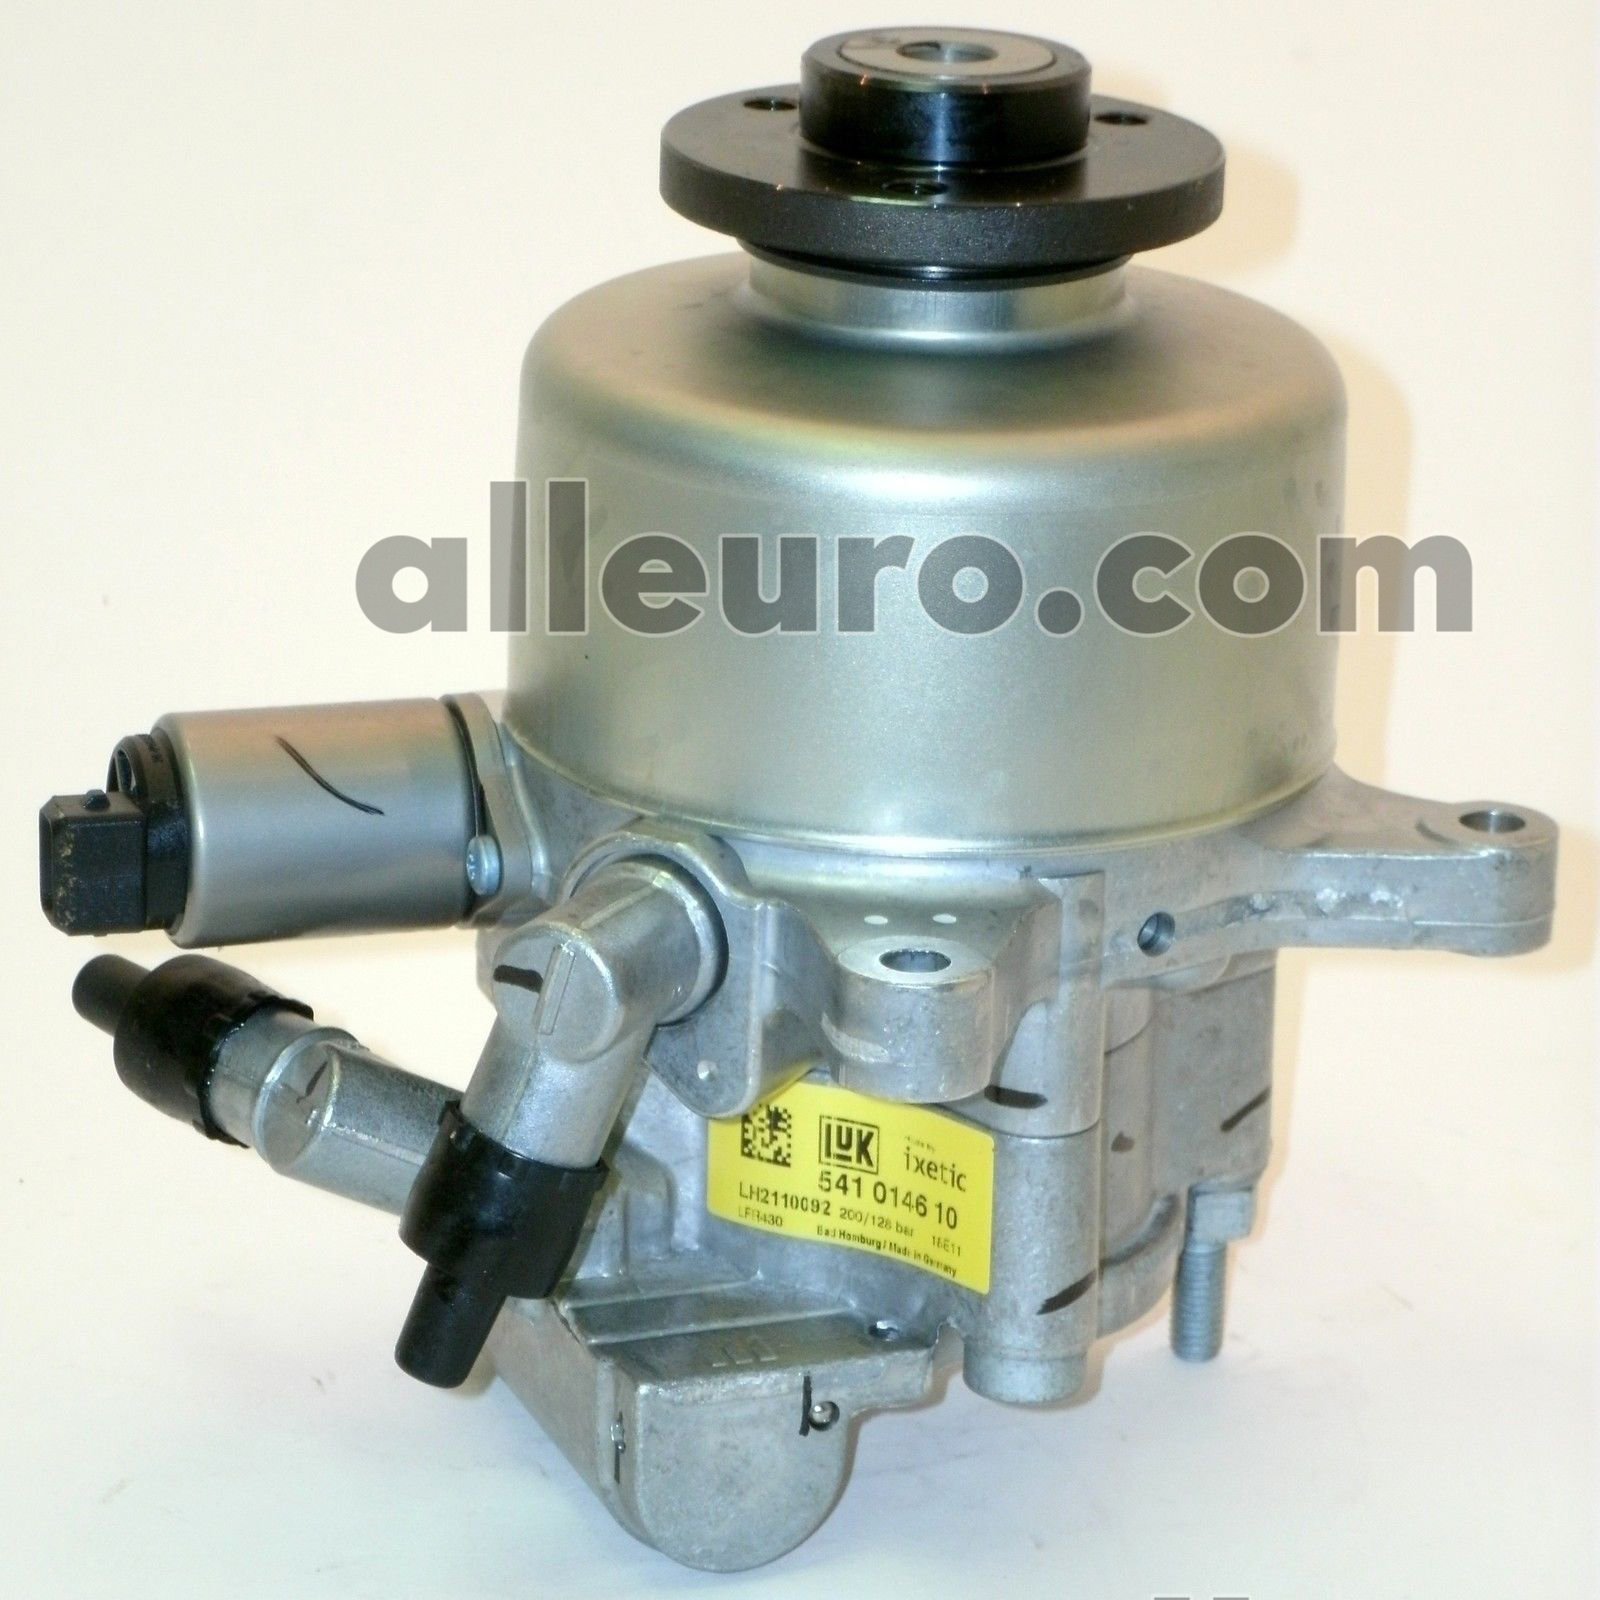 alleuro com: LuK Power Steering Pump 0024666001